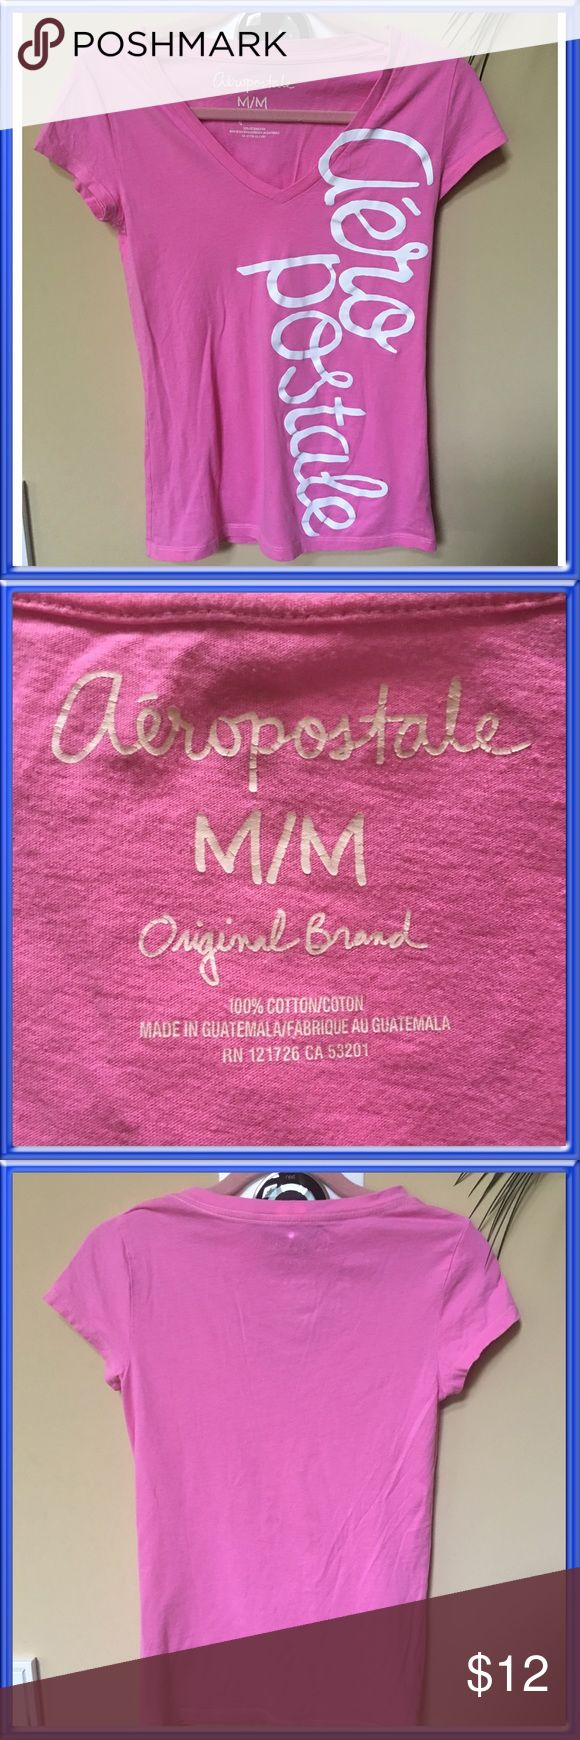 Aeropostale Pink Cap Sleeve V Neck T Super soft pink Aeropostale T Shirt.Capped sleeves and deep V neck with white Aeropostale graphic on front.Excellent condition.Women's Medium. Aeropostale Tops Tees - Short Sleeve